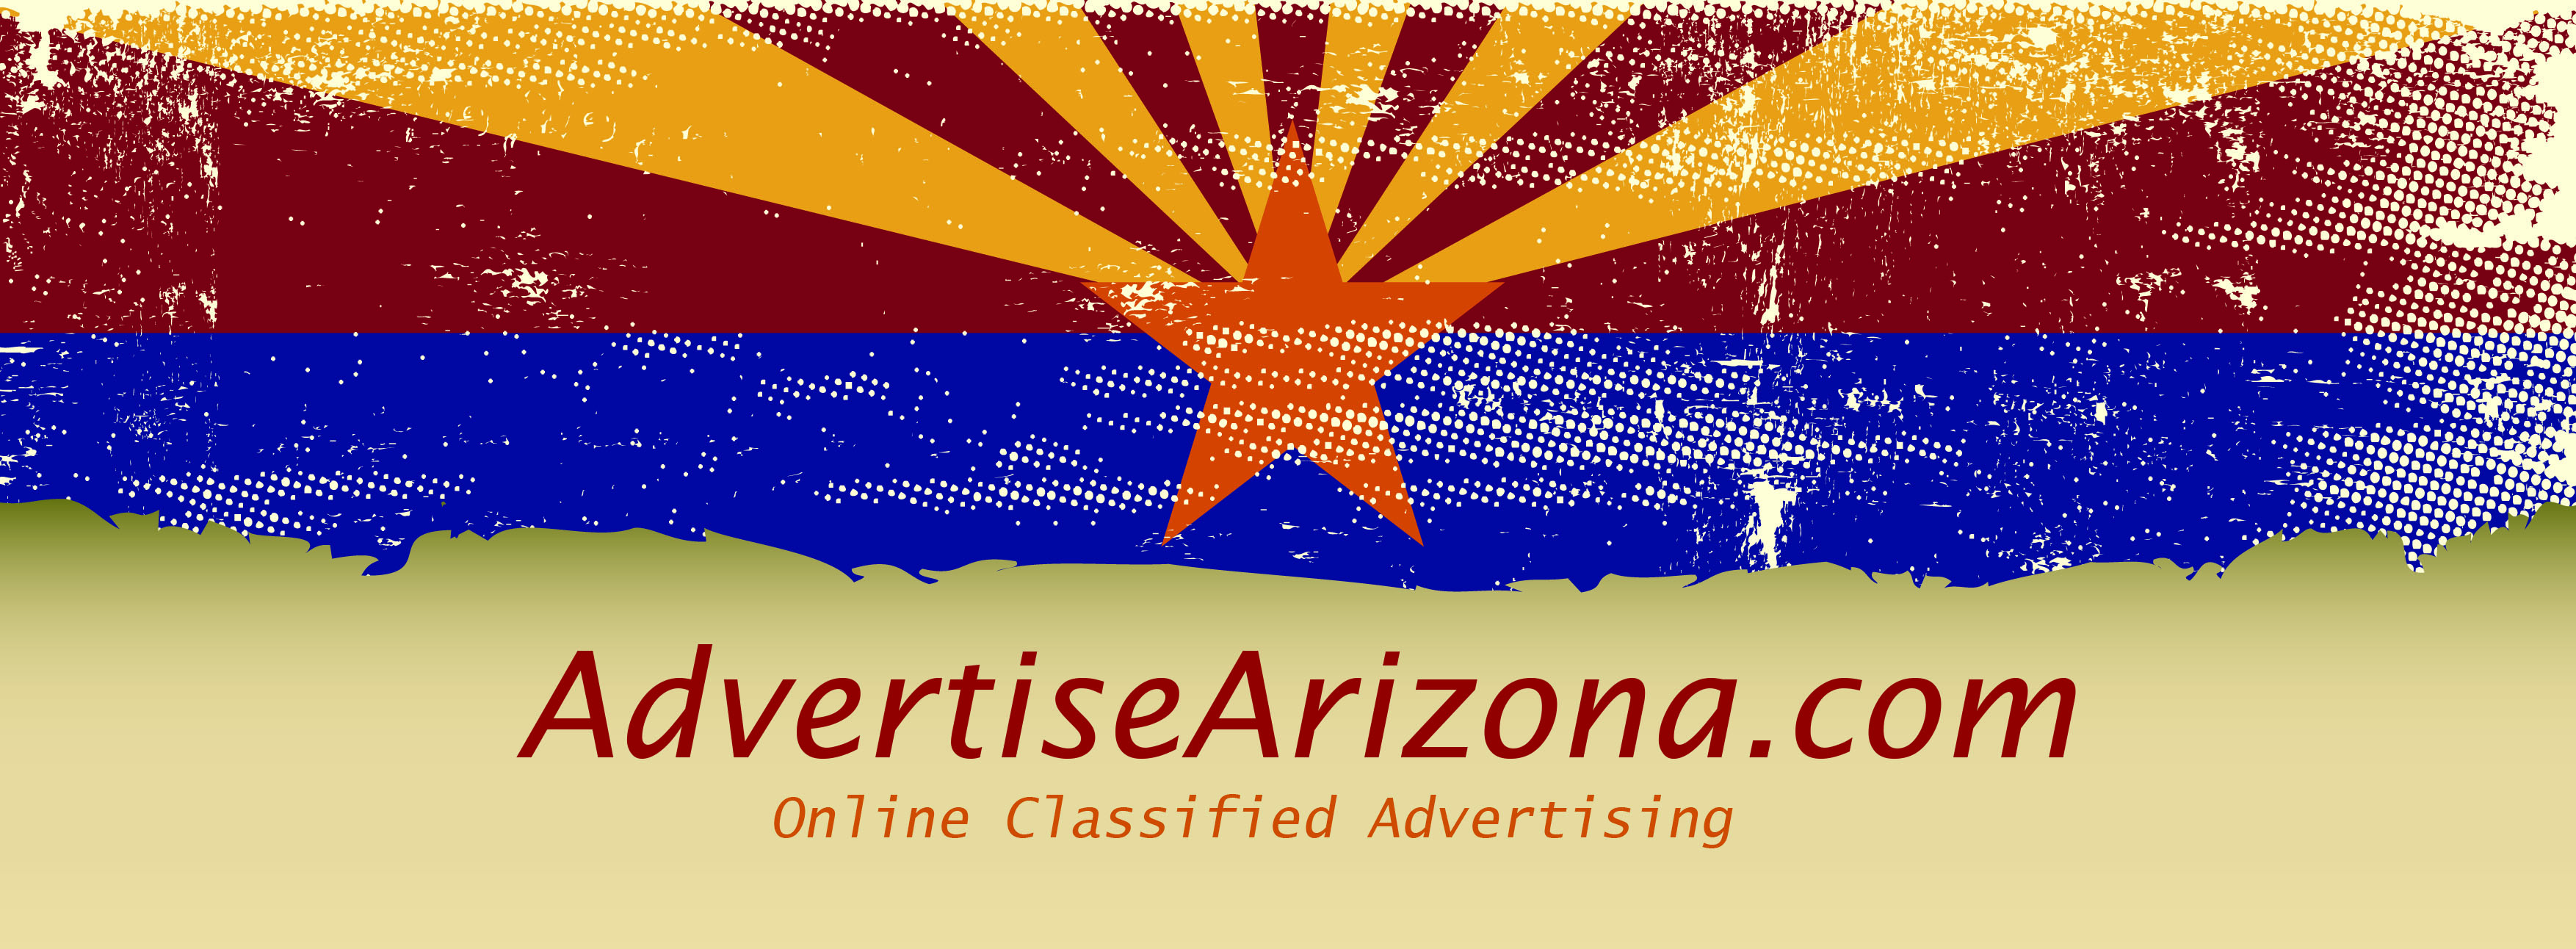 Advertise Arizona